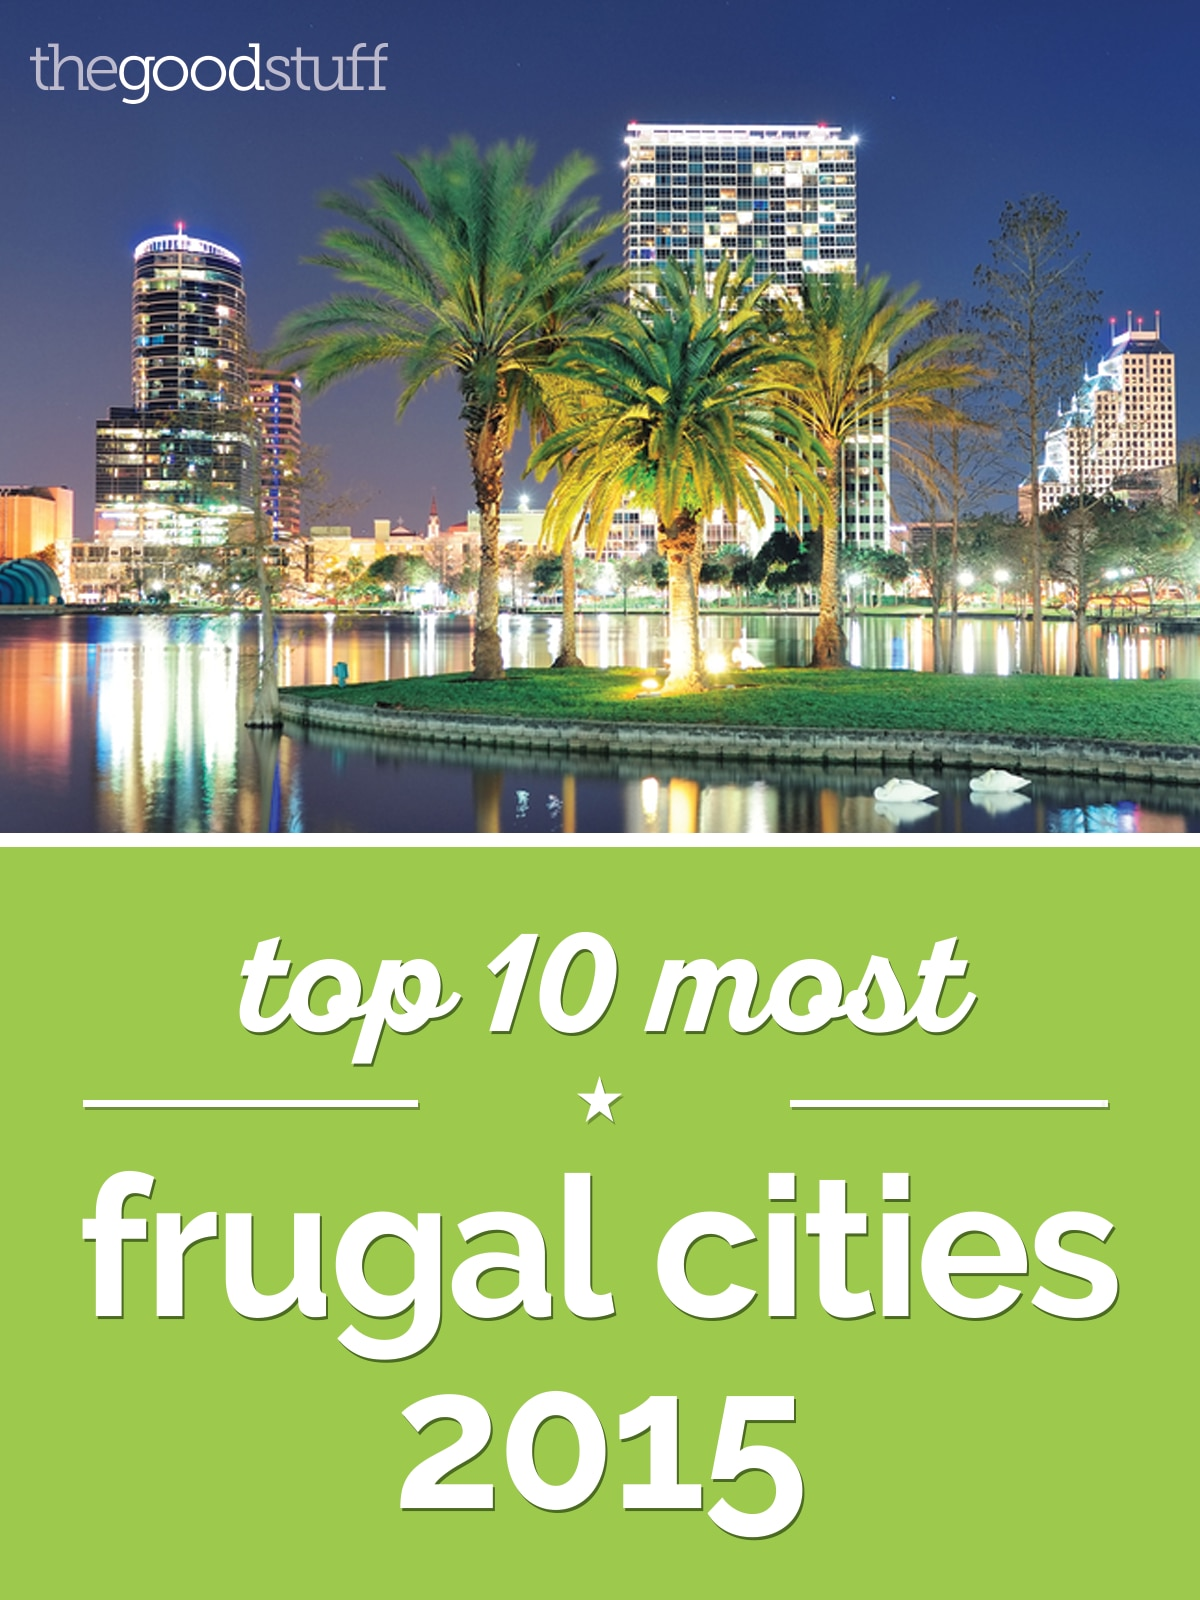 Top 10 Most Frugal Cities 2015 | thegoodstuff